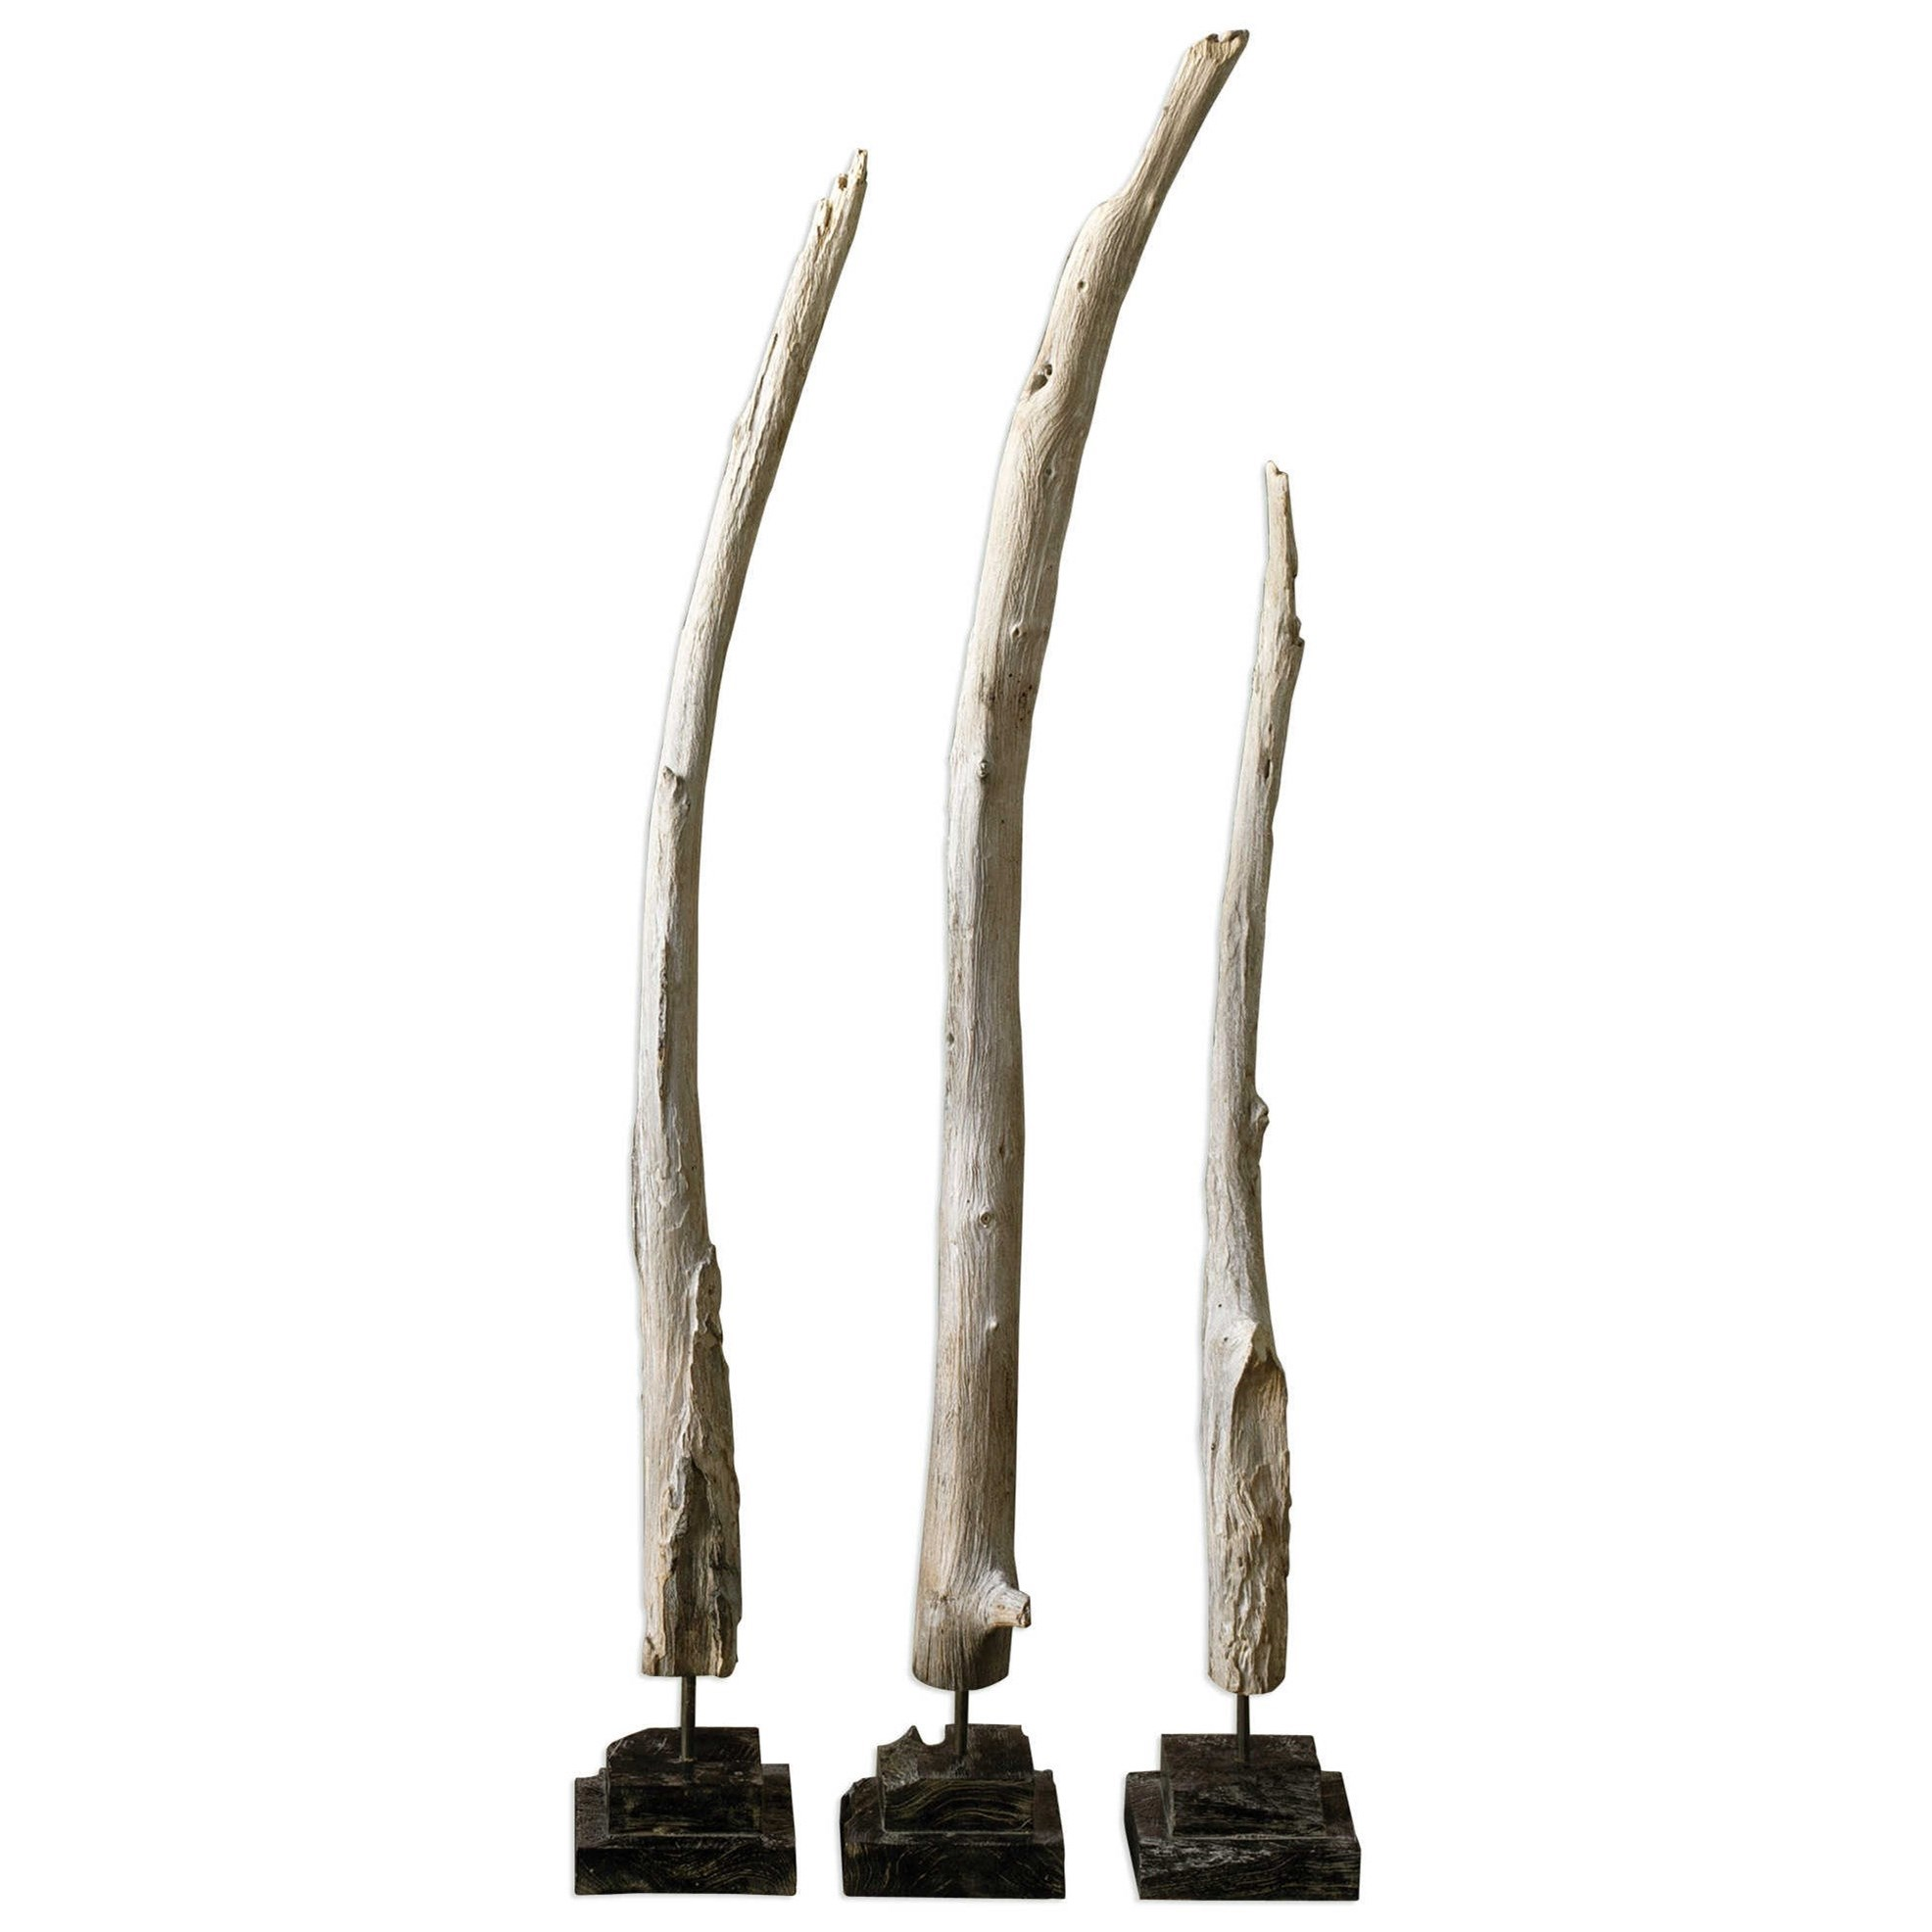 Teak Branches Statues, Set of 3